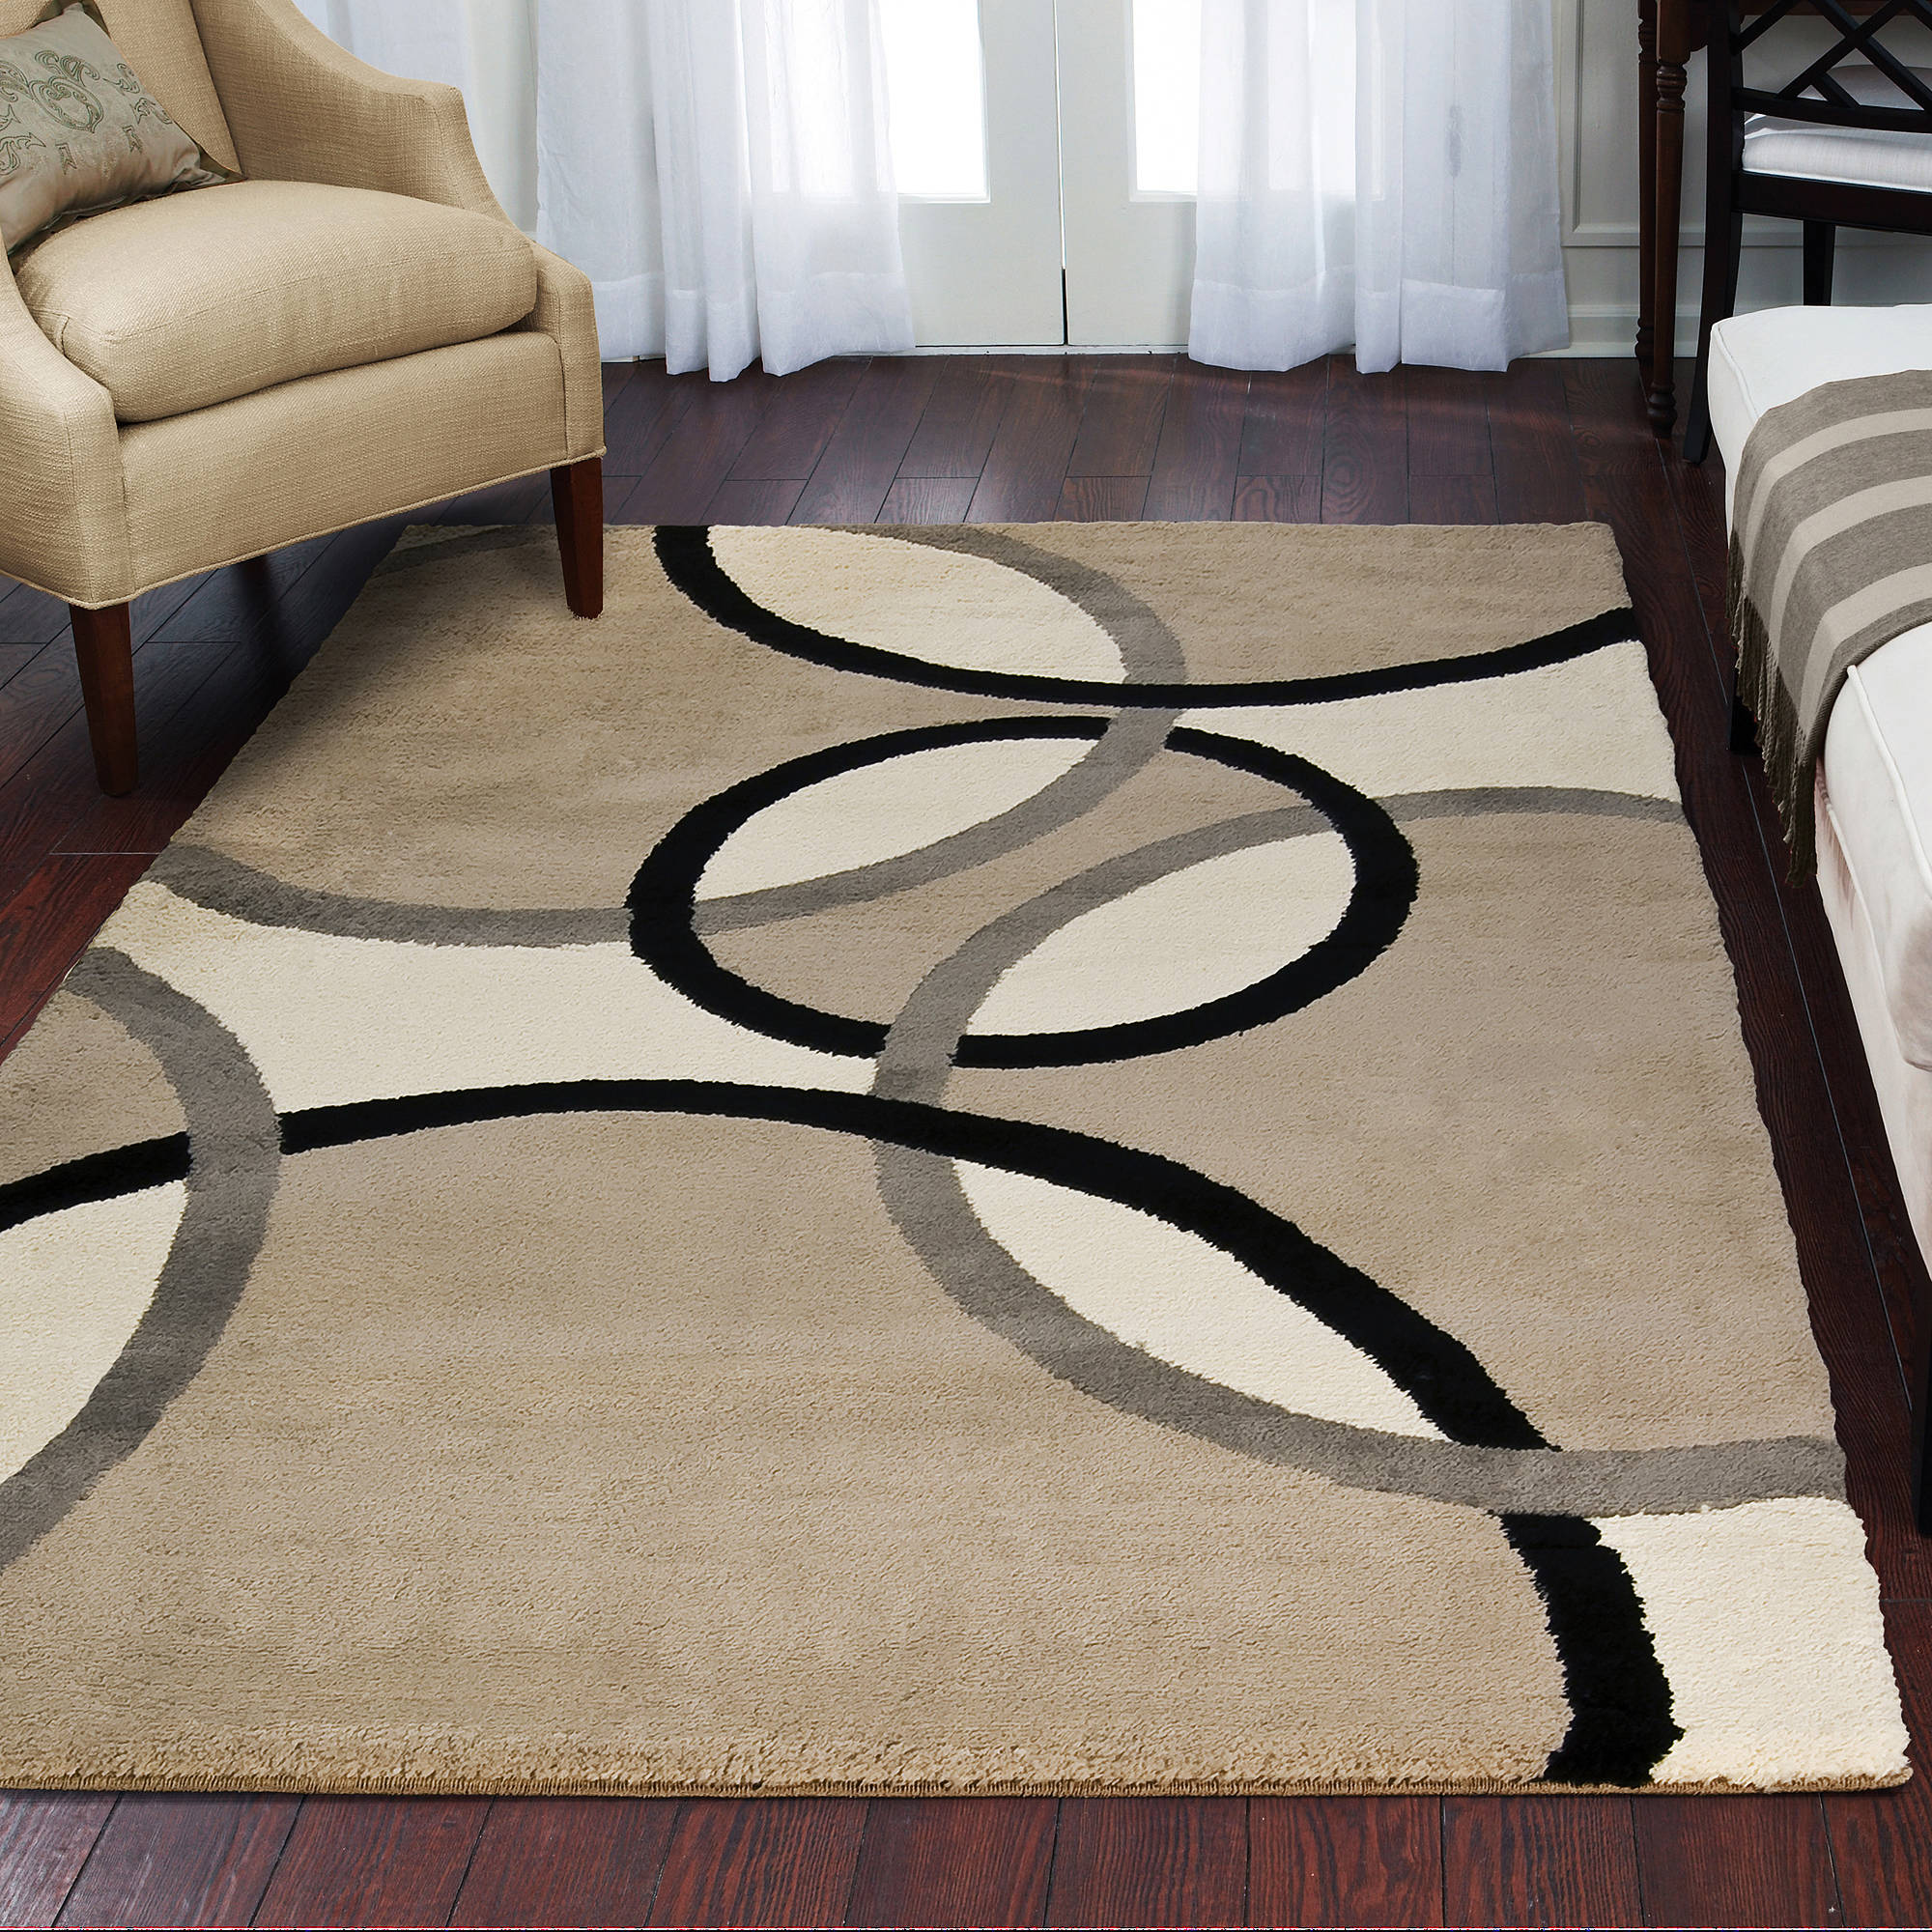 Orian Oris Woven Fleece Rug Available In Multiple Colors And Sizes